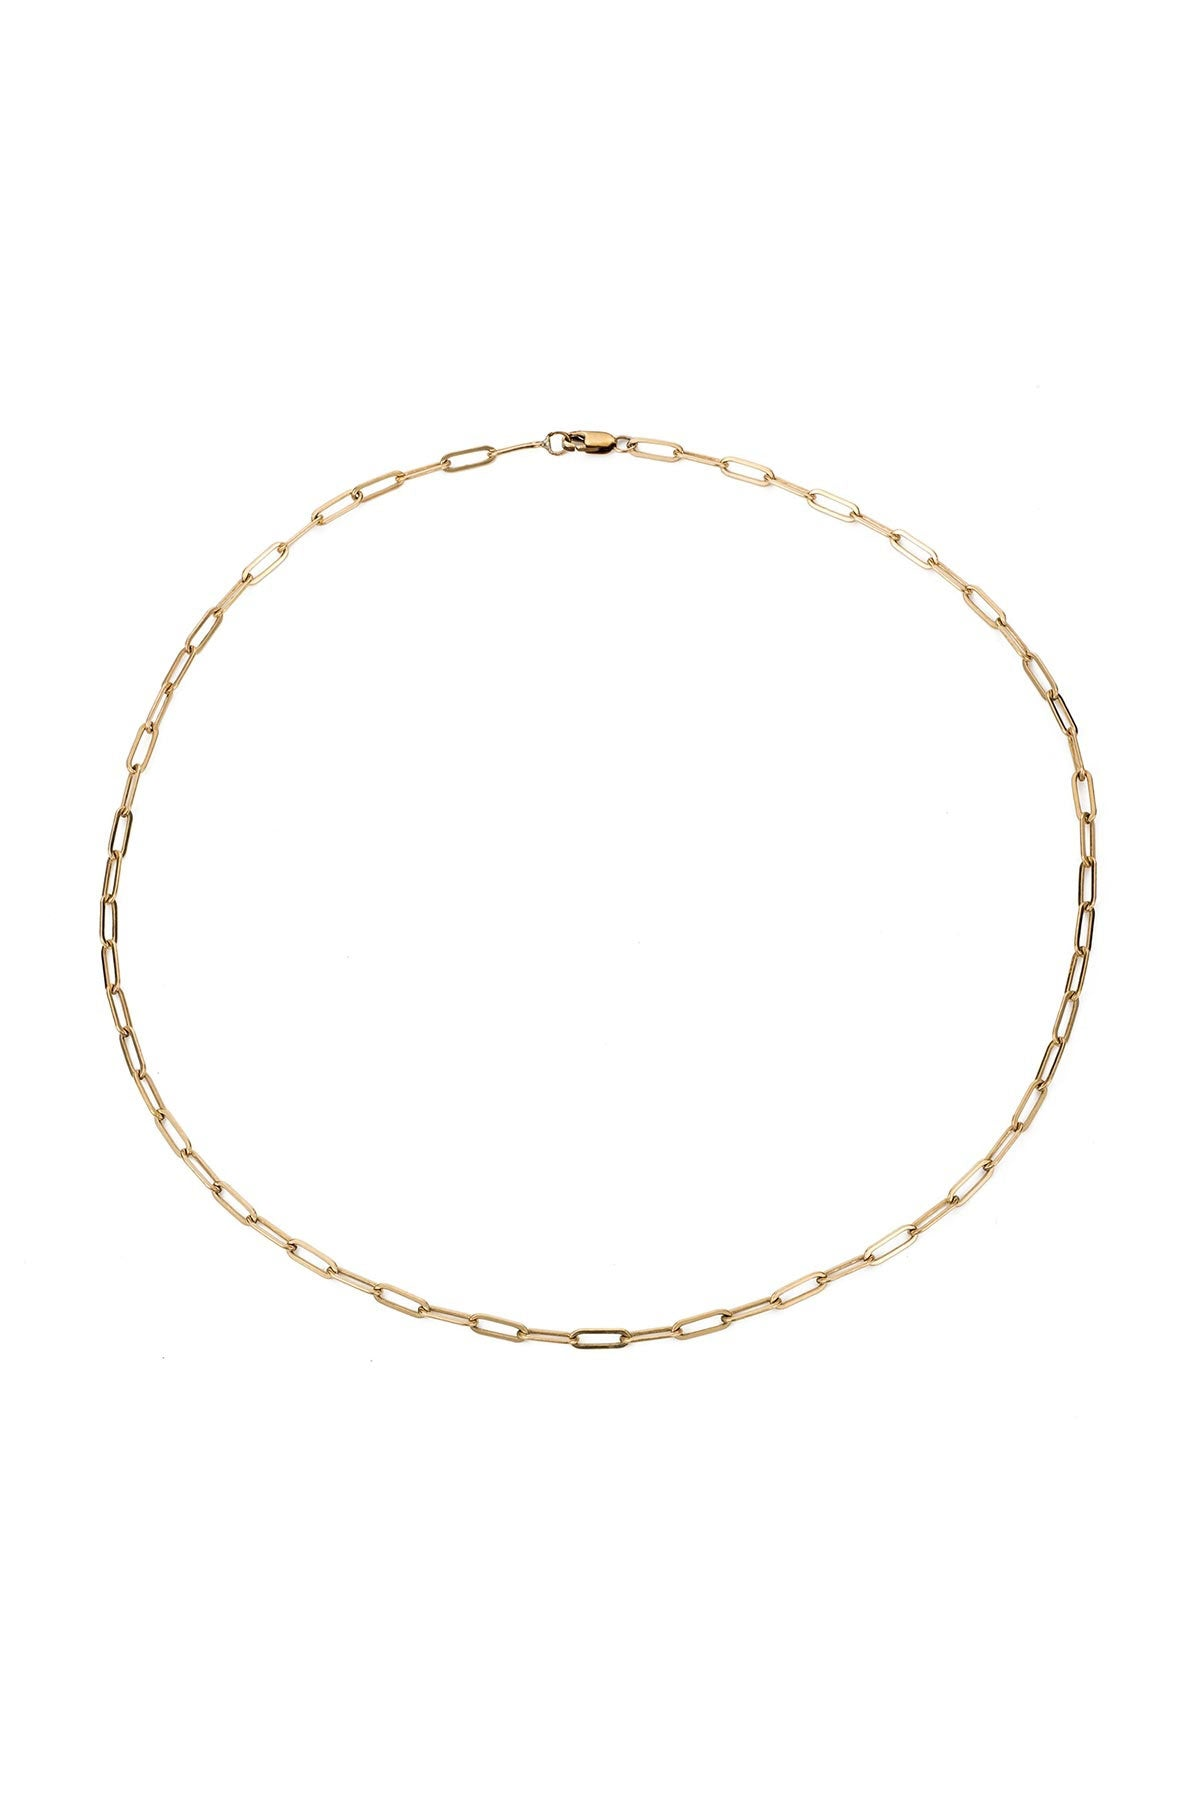 MICRO RECTANGLE CHAIN CHOKER BY MARA CARRIZO SCALISE